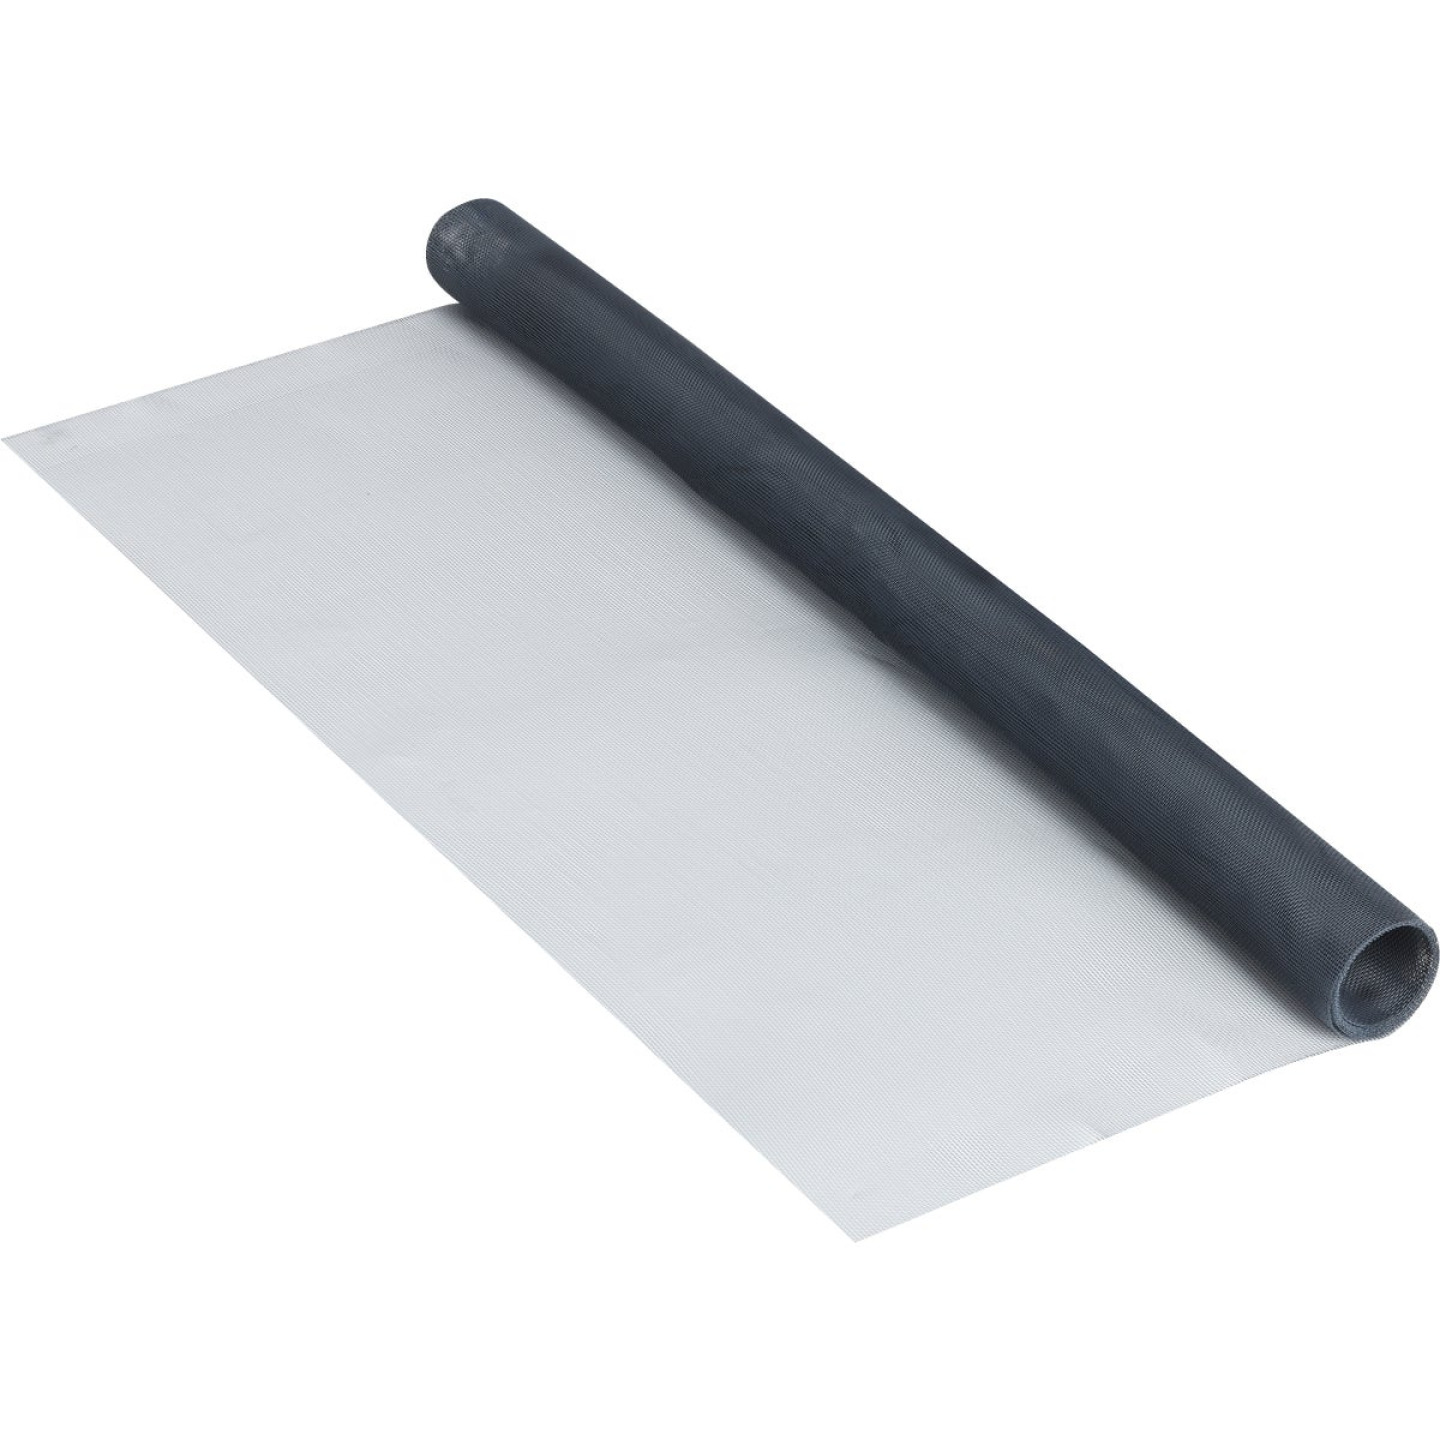 Phifer 36 In. x 84 In. Charcoal Aluminum Screen Ready Rolls Image 3